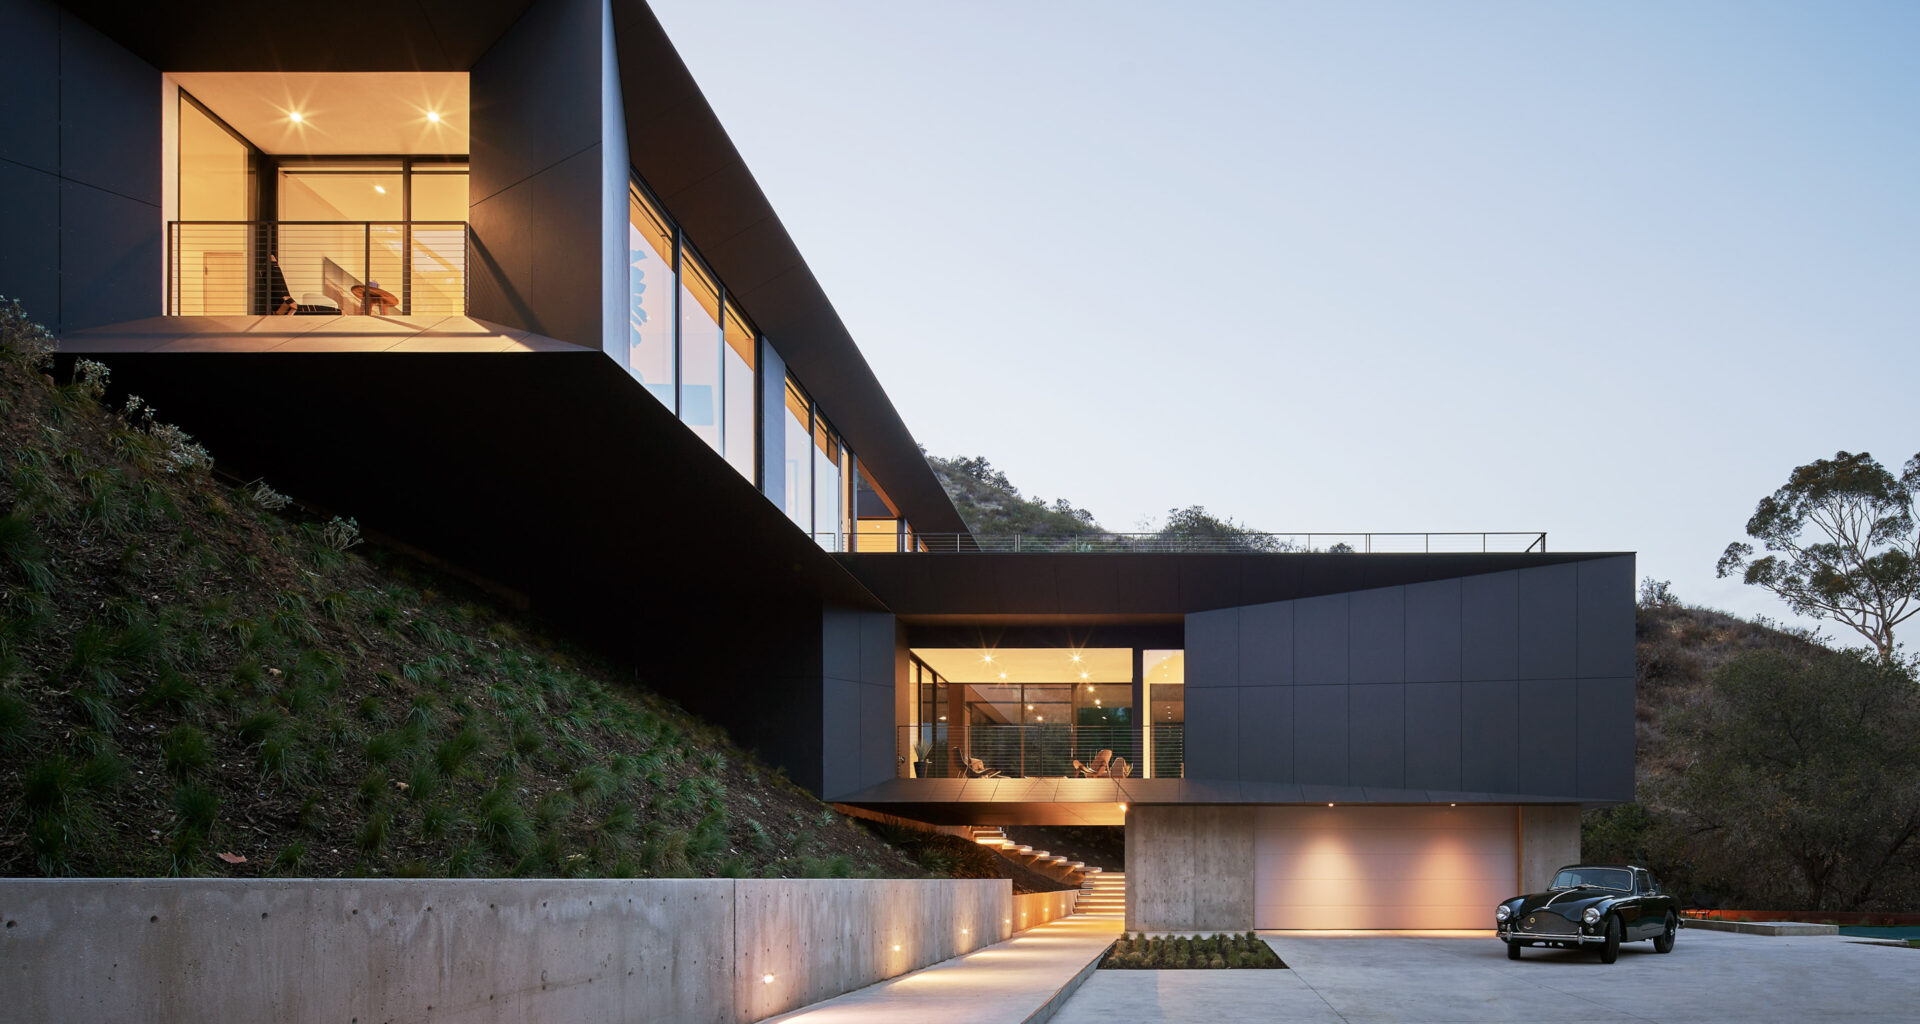 Montalba Architects, LR2, Pasadena